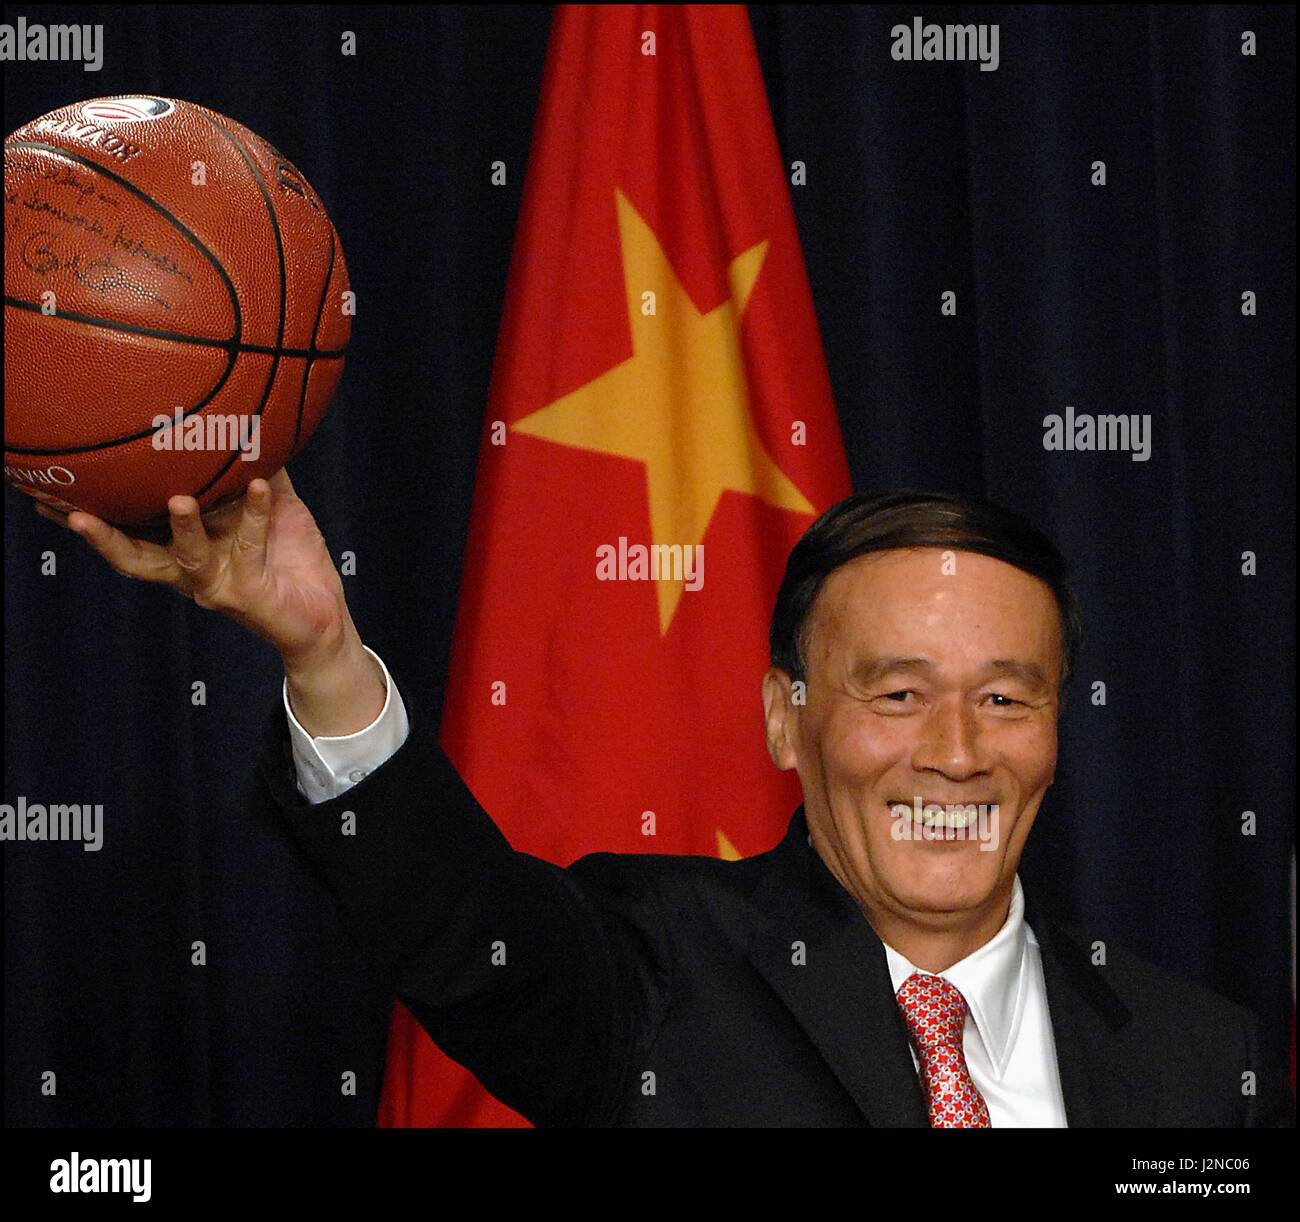 Chinese Vice Premier Wang Yang holds up a signed NBA basketball gifted him by U.S Treasury Secretary Timothy Geithner - Stock Image